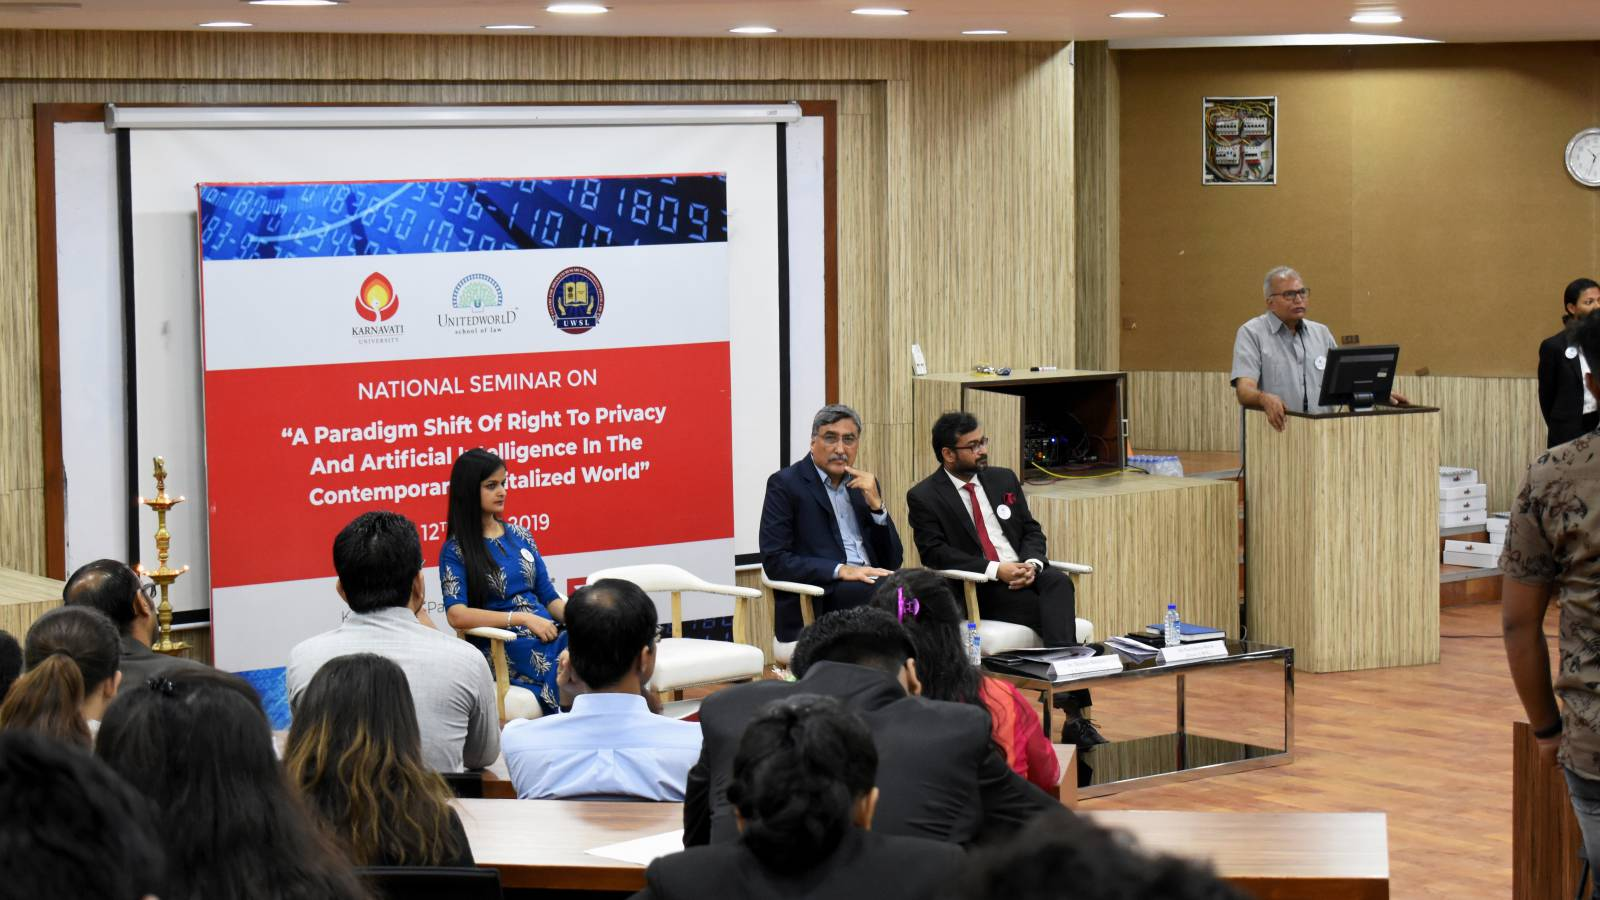 National Seminar on Privacy & AI Image